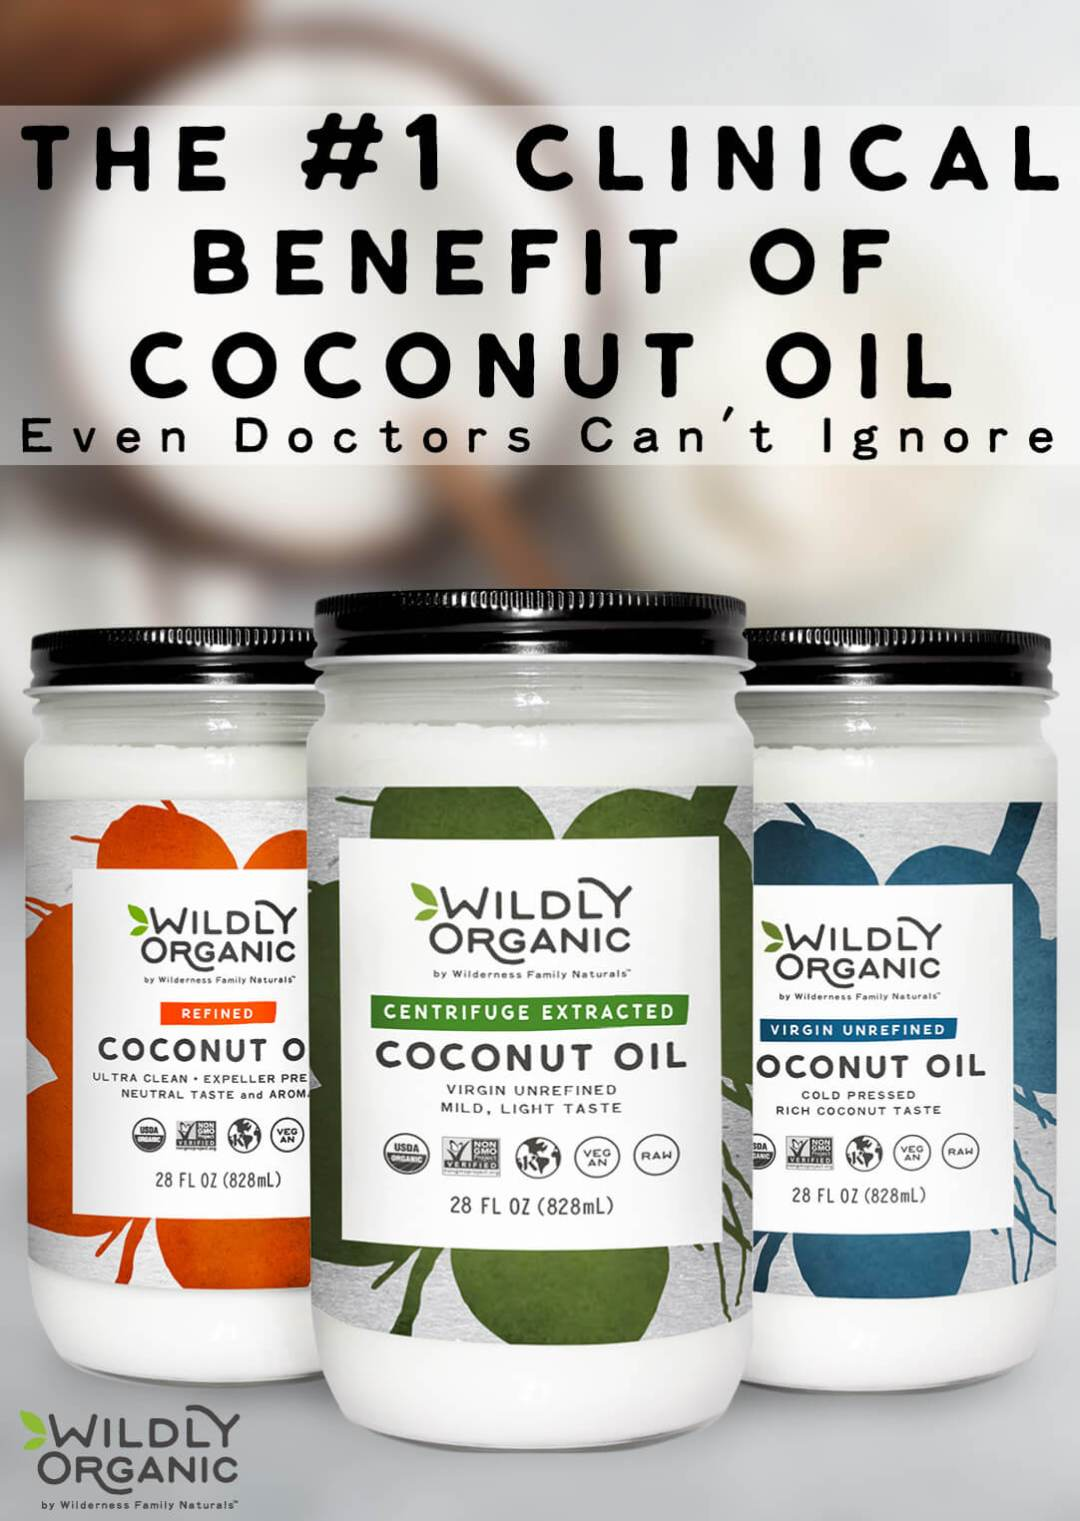 The #1 Clinical Benefit Of Coconut Oil Even Doctors Can't Ignore | Learn about the #1 clinical benefit of coconut oil this doctor can't ignore. Dr. John uses WFN's coconut oil in patients with systemic yeast overgrowth, neuro-degenerative disorders, gut imbalances, and more. And this one nutrient is why!